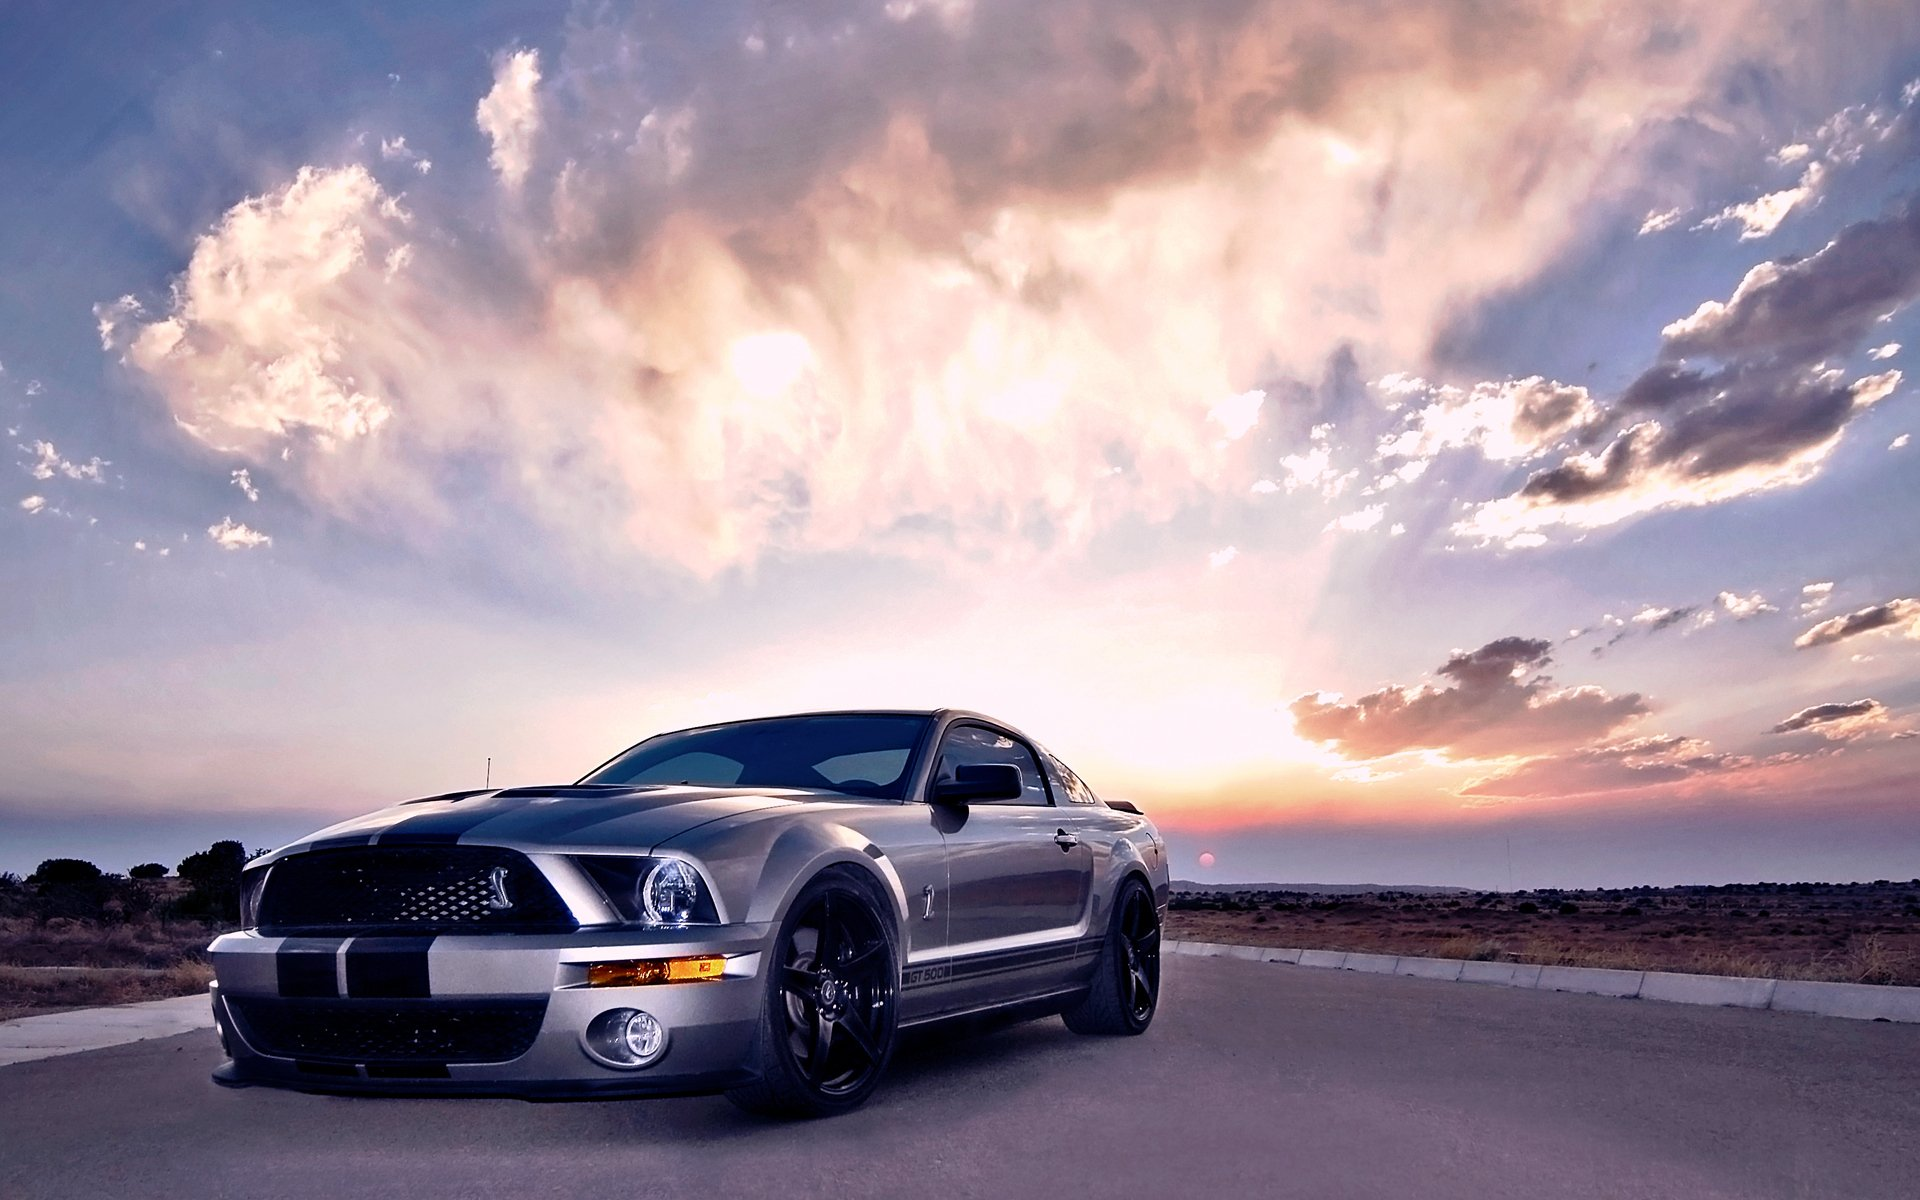 Cars wallpapers ford mustang gt500 shelby cobra cool wallpaper hd